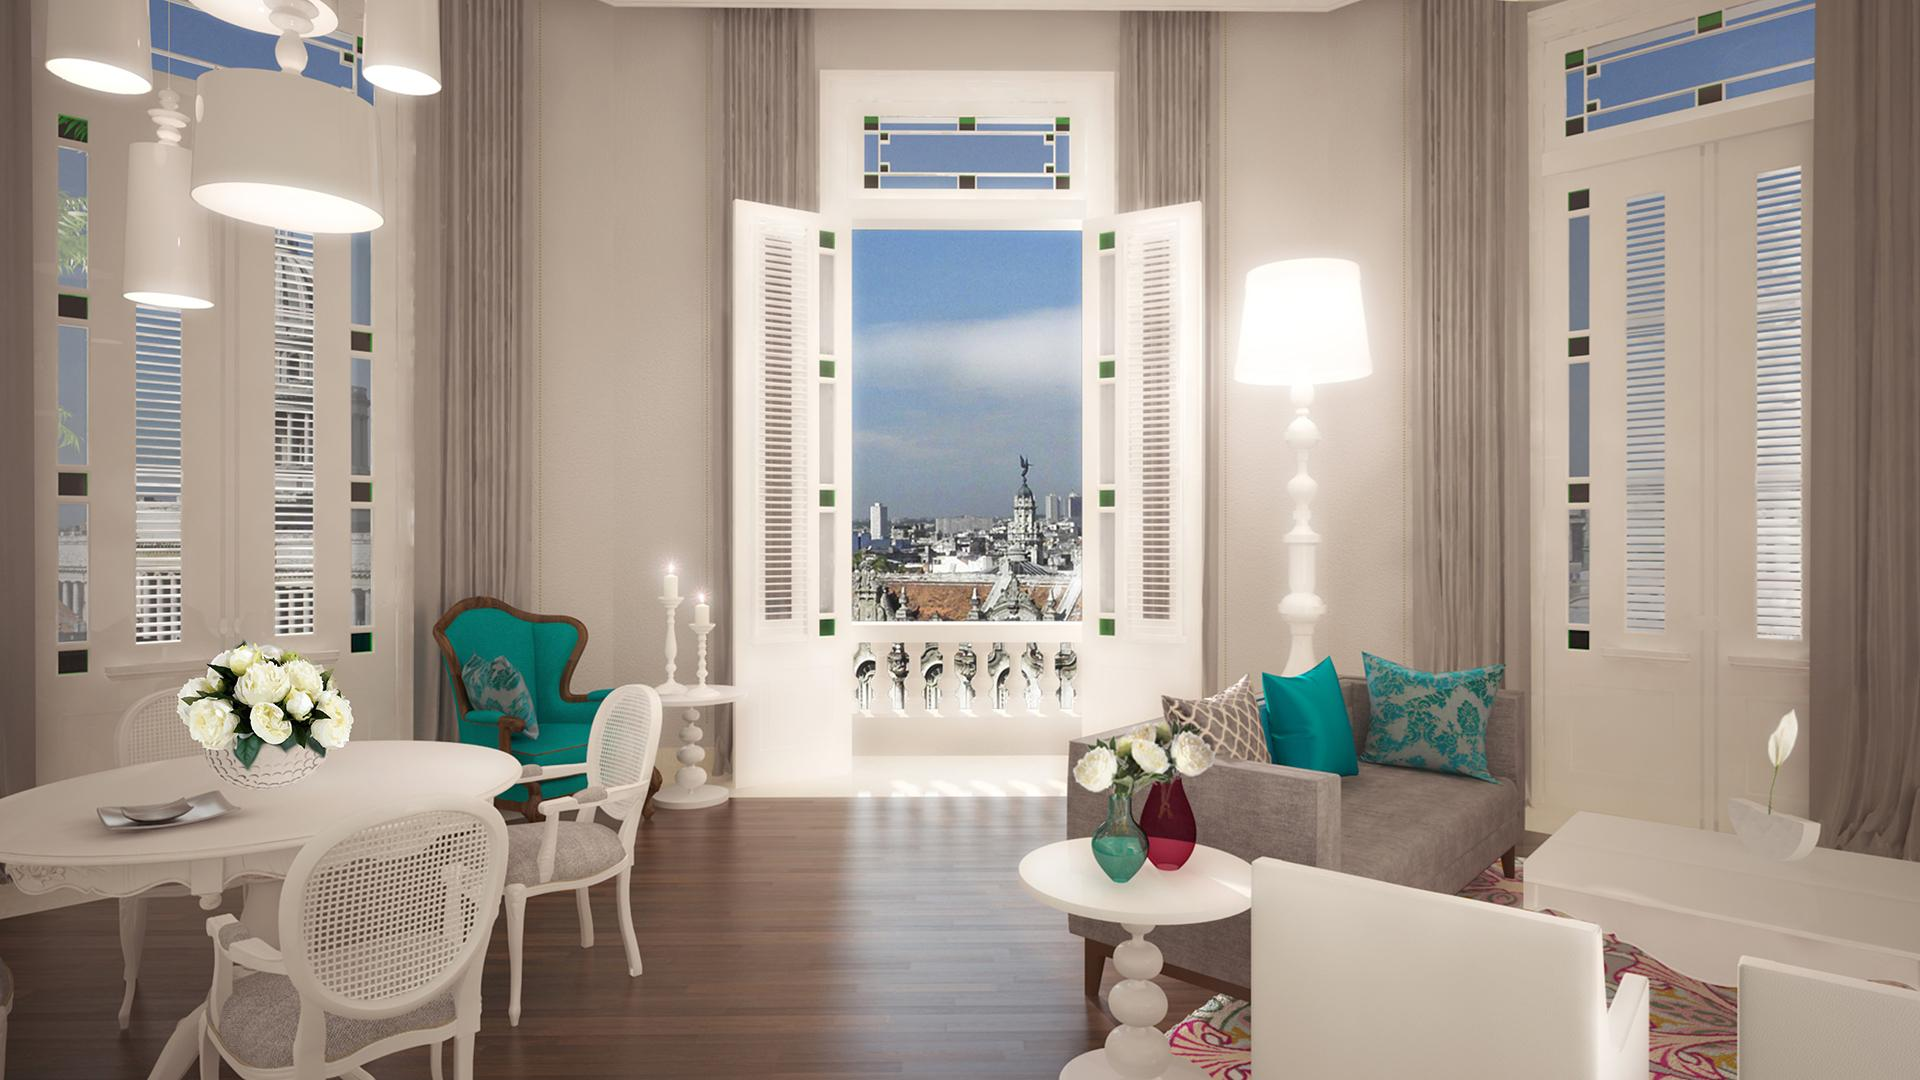 The luxurious suites will look out onto Parque Central. Image by Kempinski Hotels